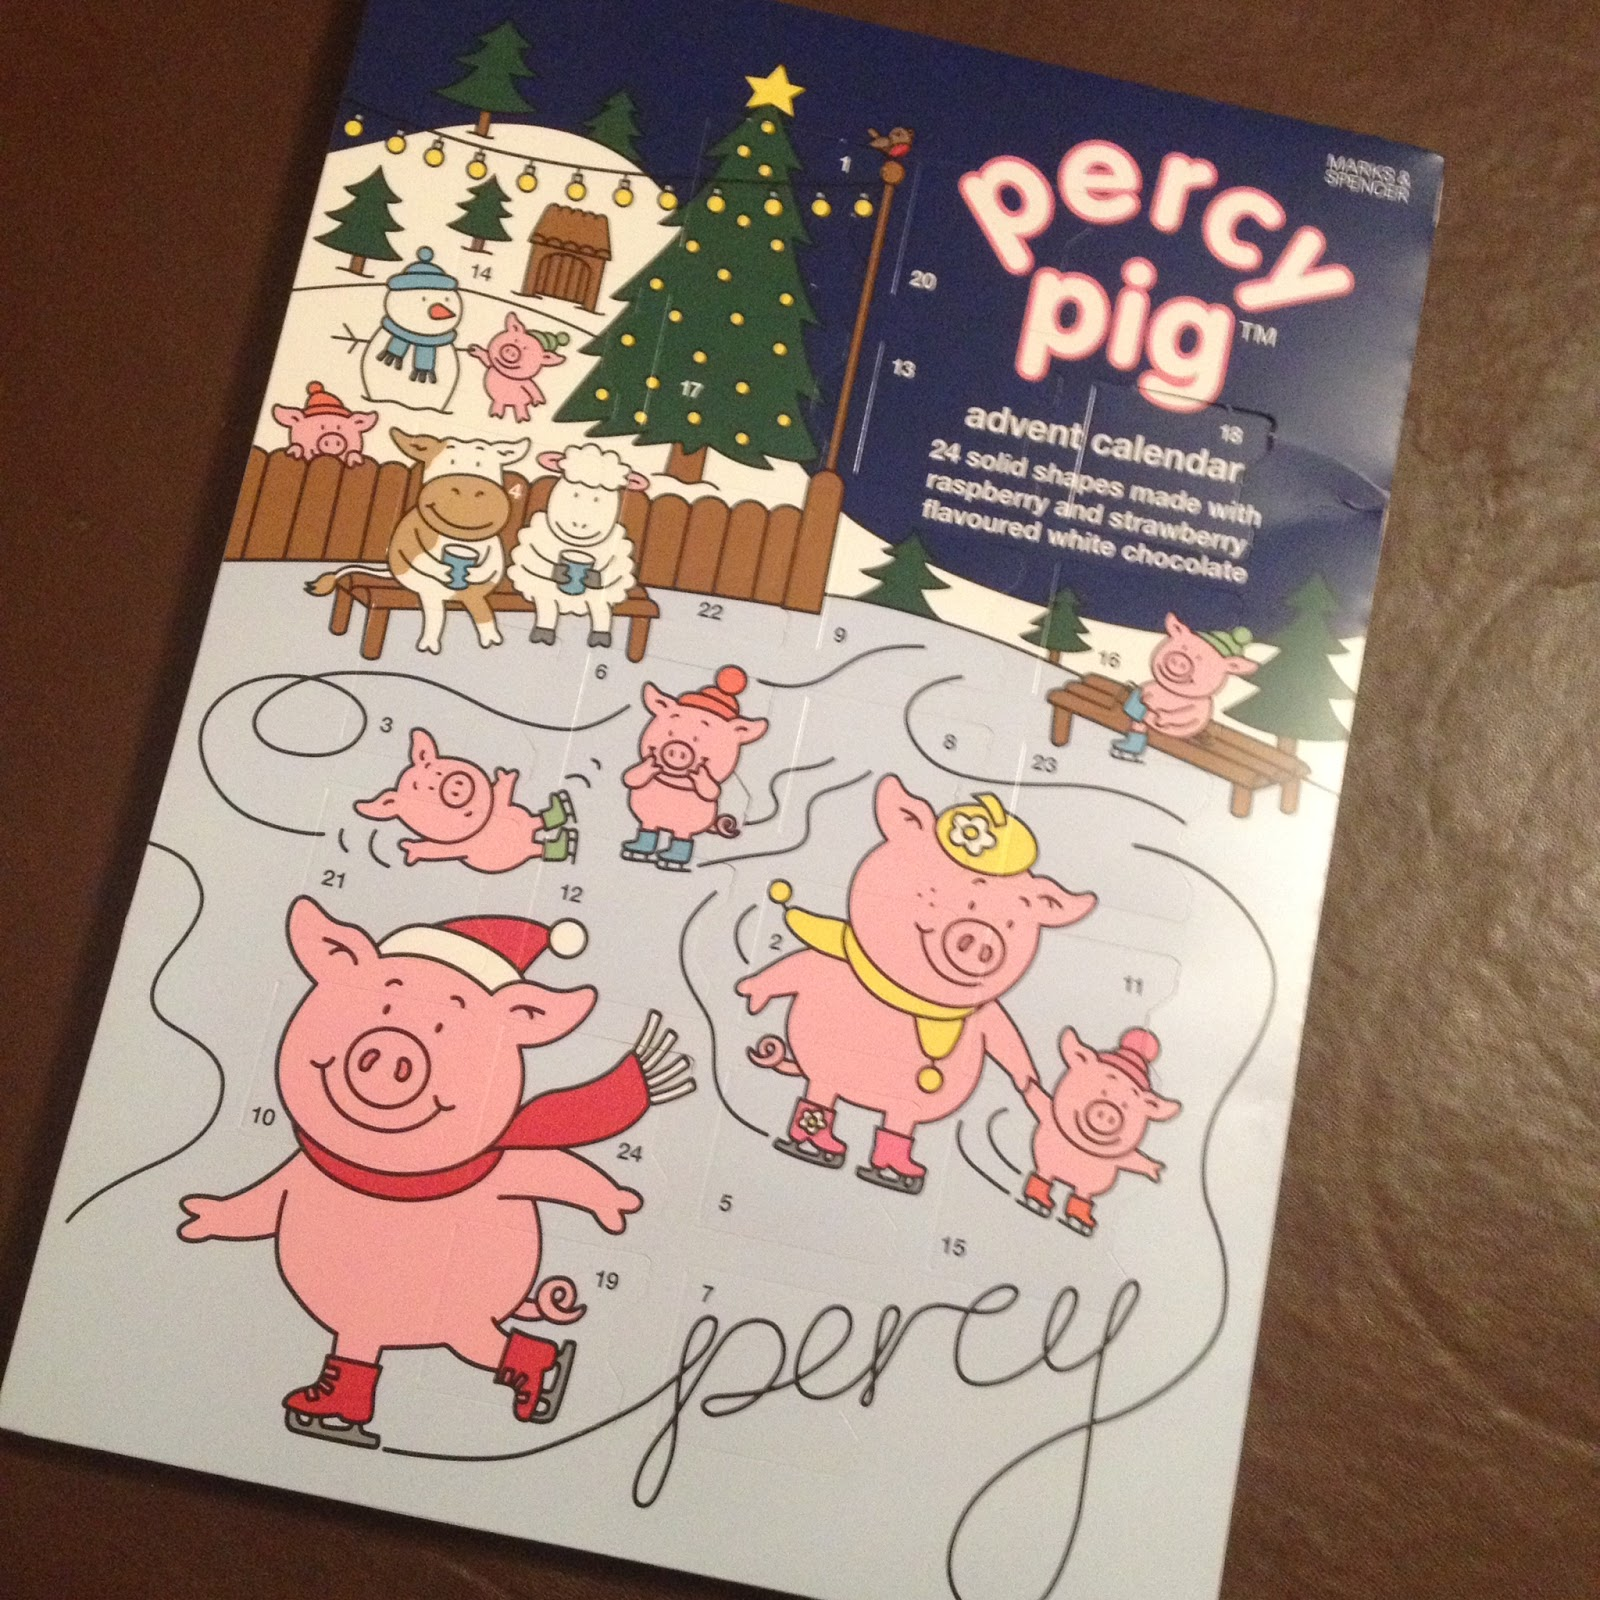 m&s percy pig advent calendar